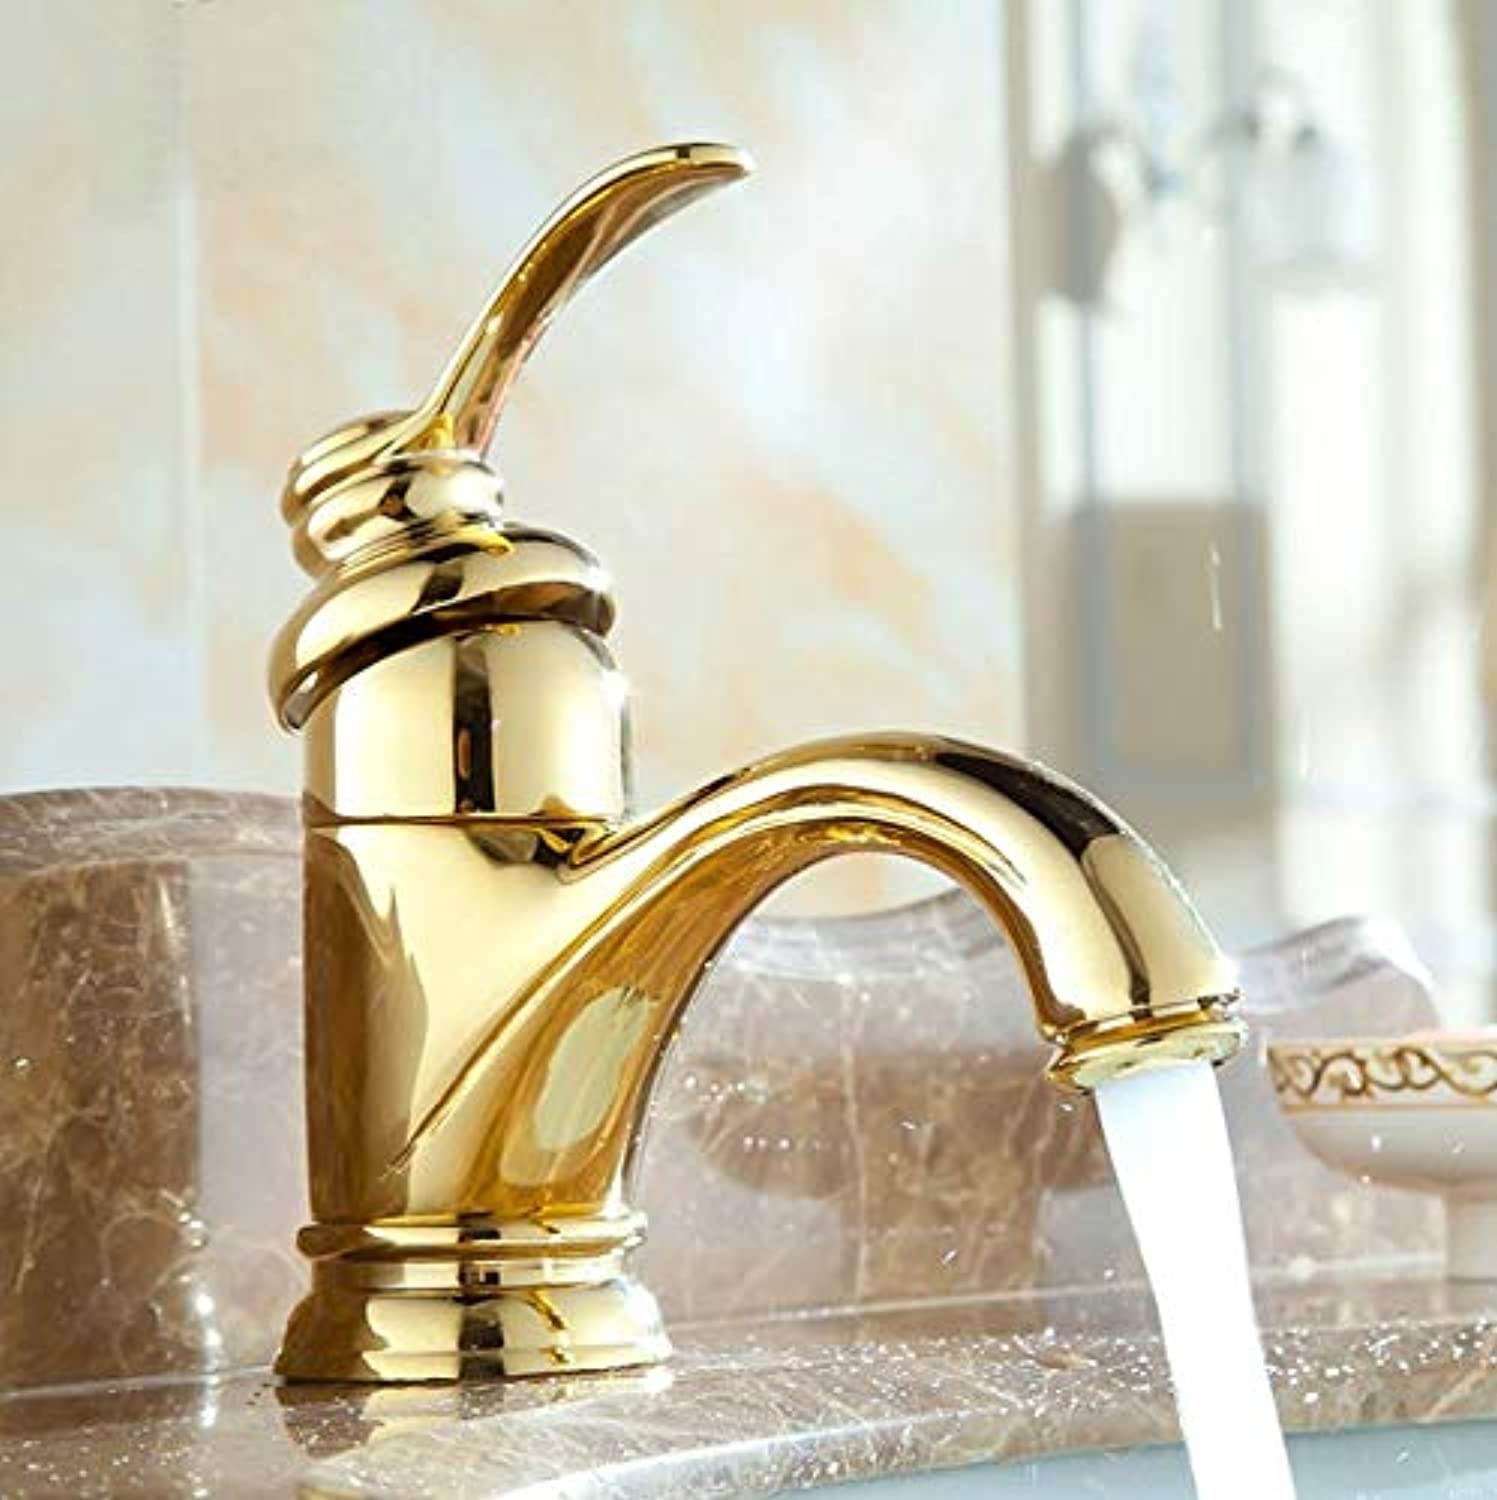 Decorry Antique Brass Faucet Bathroom Faucets Crane Wash Basin Mixer 9025A, B